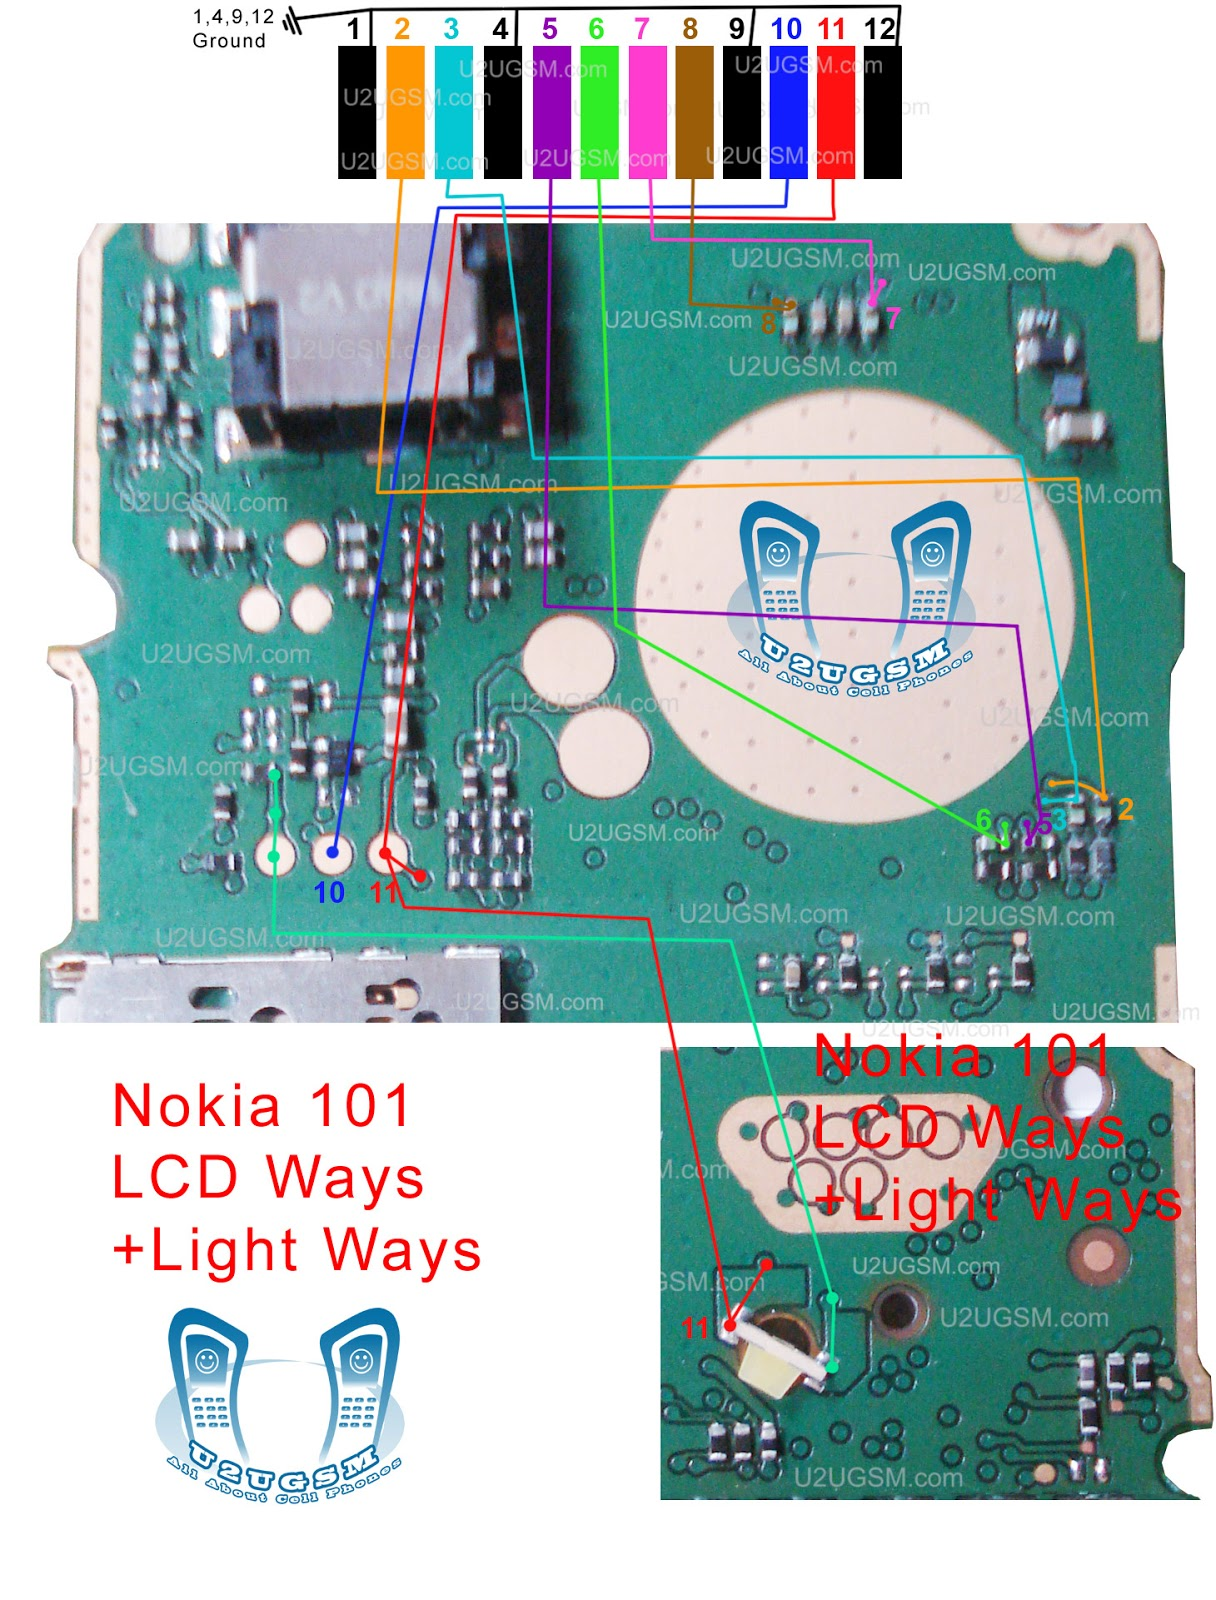 nokia 101 lcd ways lcd light solution + LED Light ways